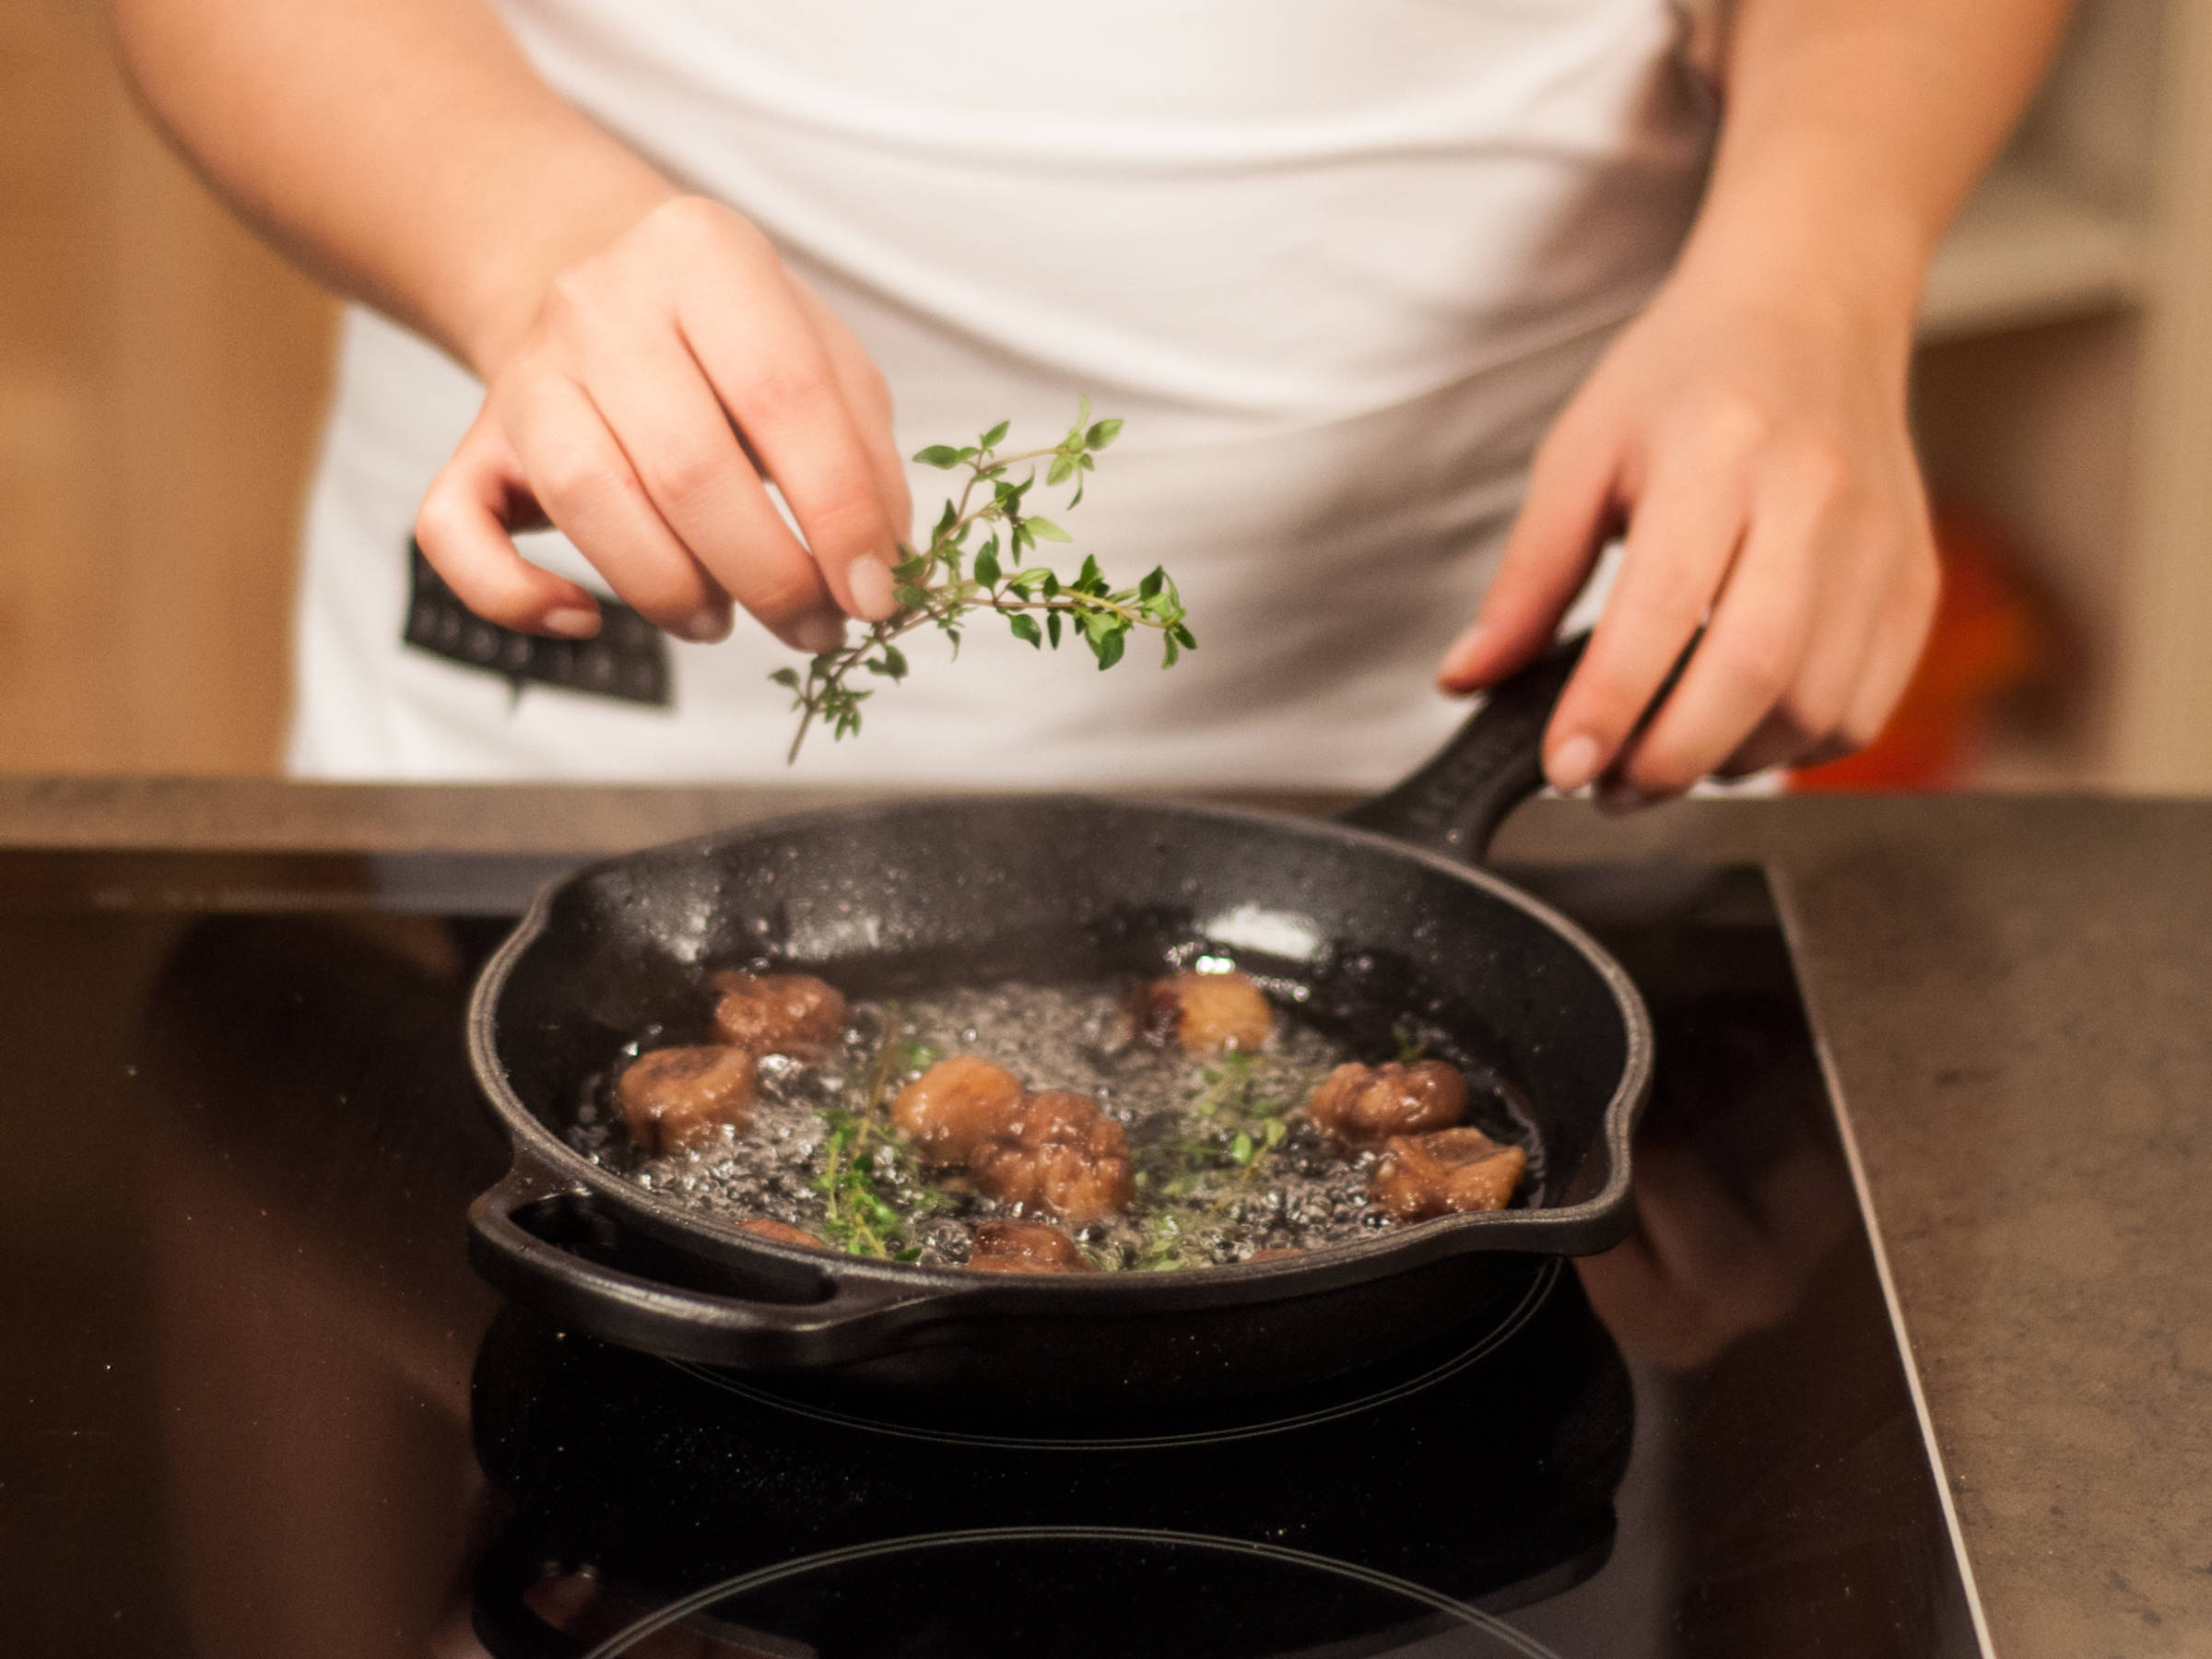 Add marjoram to pan and continue to cook for an additional 1 – 2 min. Remove from heat, drain liquid, and set chestnuts aside. Discard marjoram.